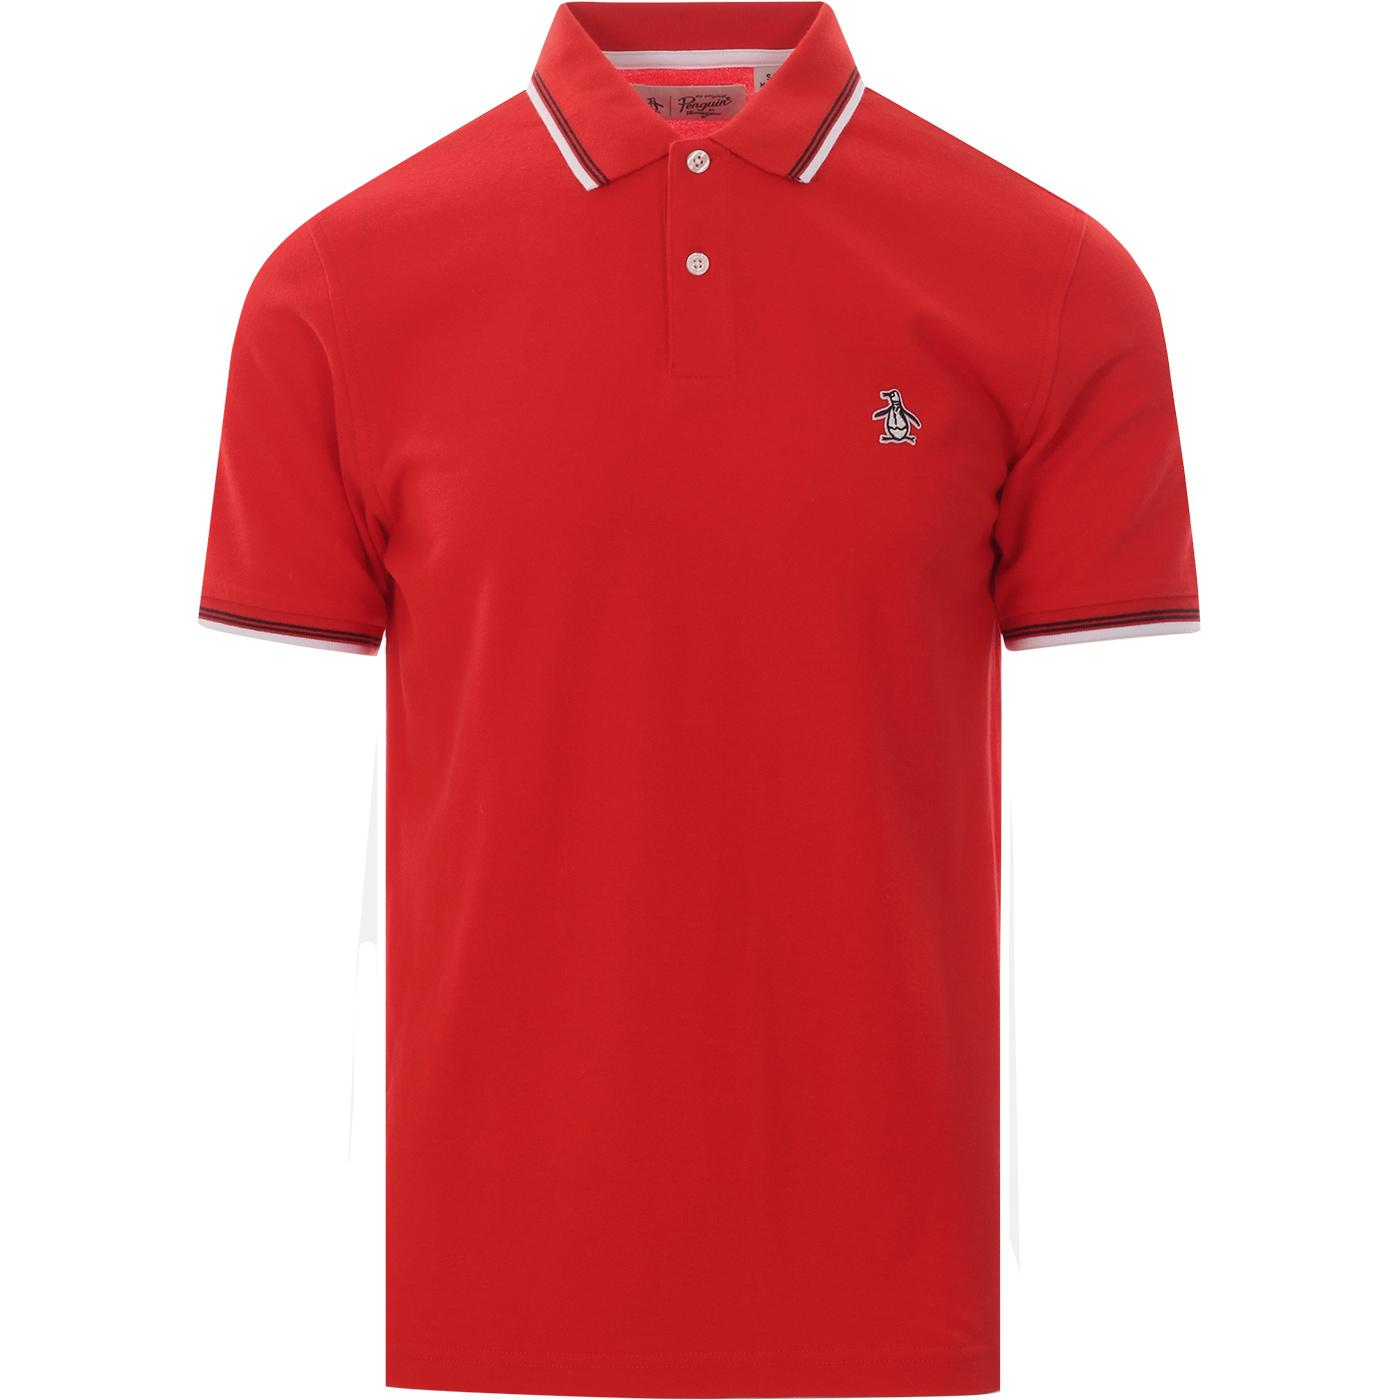 Sticker Pete ORIGINAL PENGUIN Pique Polo Top (Red)